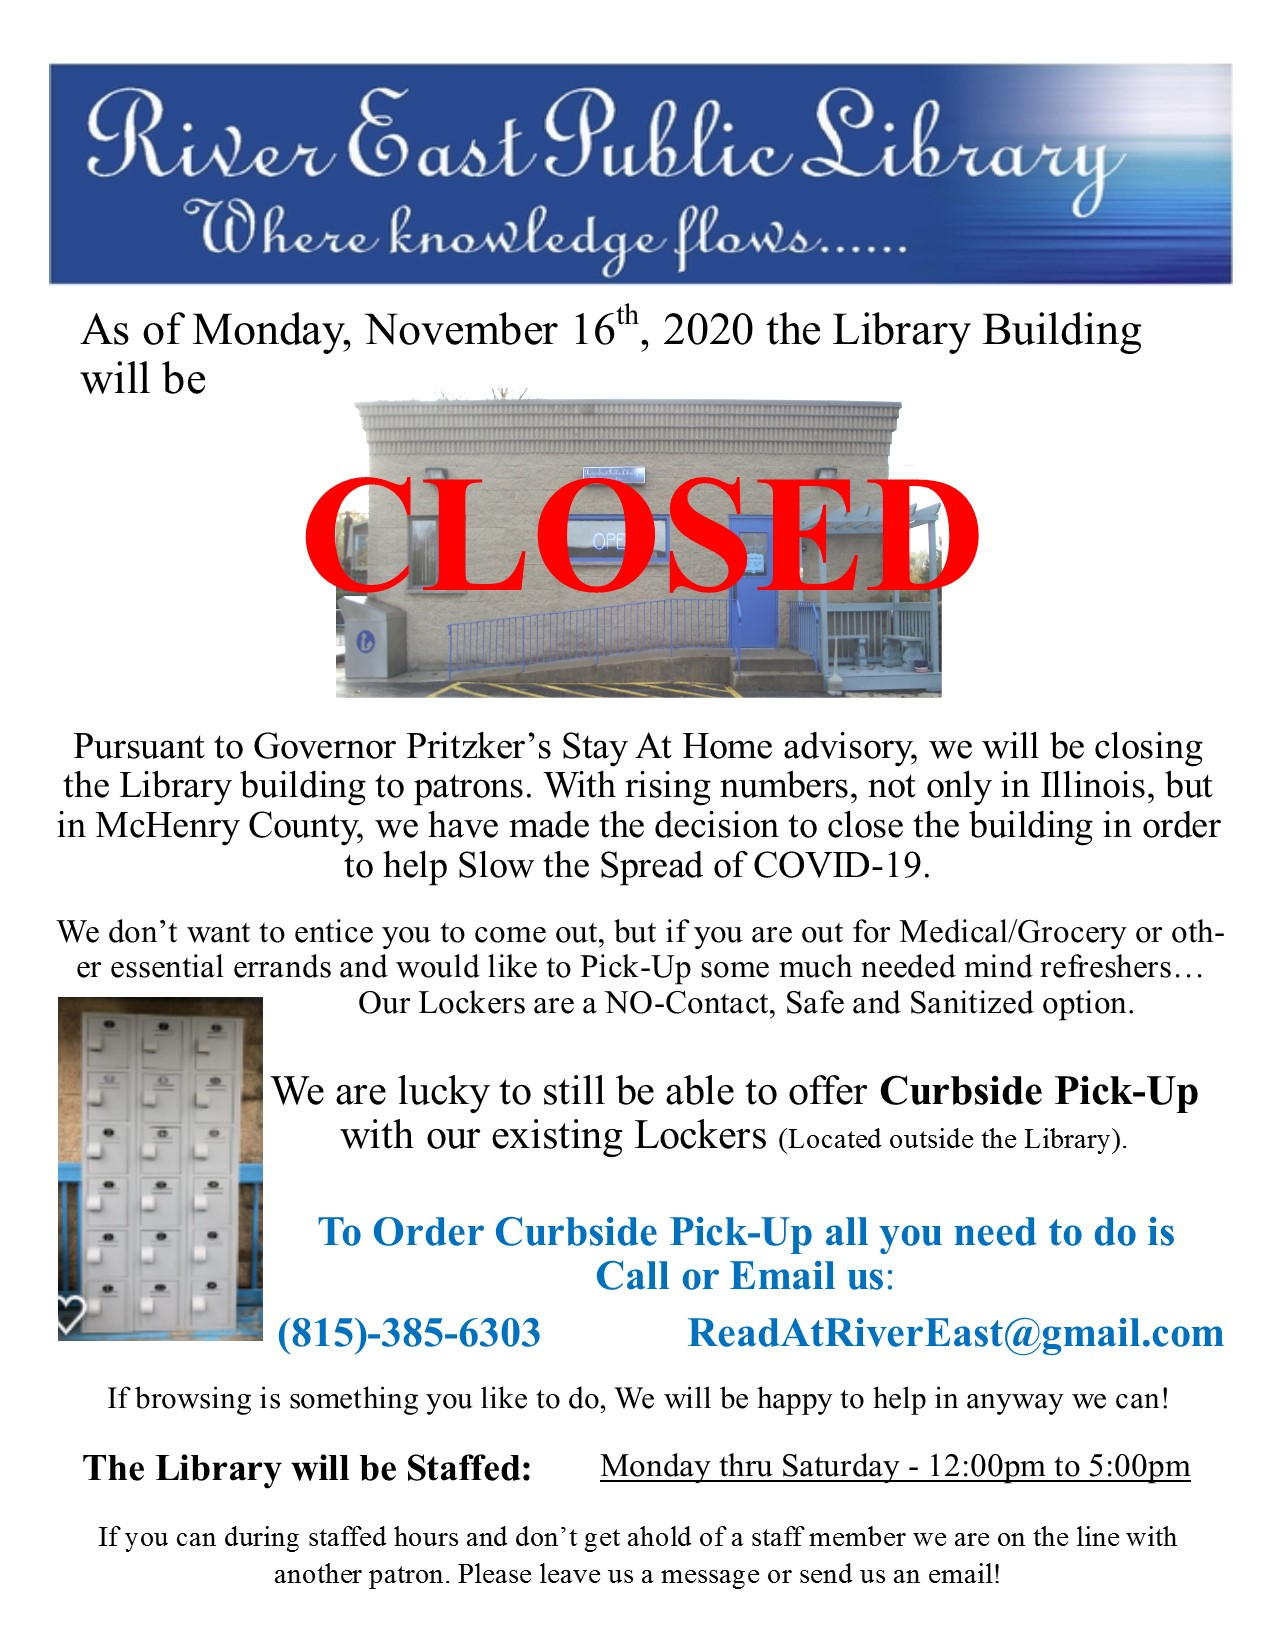 Poster informing our patrons that our library will be closing as of Monday November 16 2020 and going to curbside pickup until further notice, due to the high positivity rates for Covid-19 in our area.